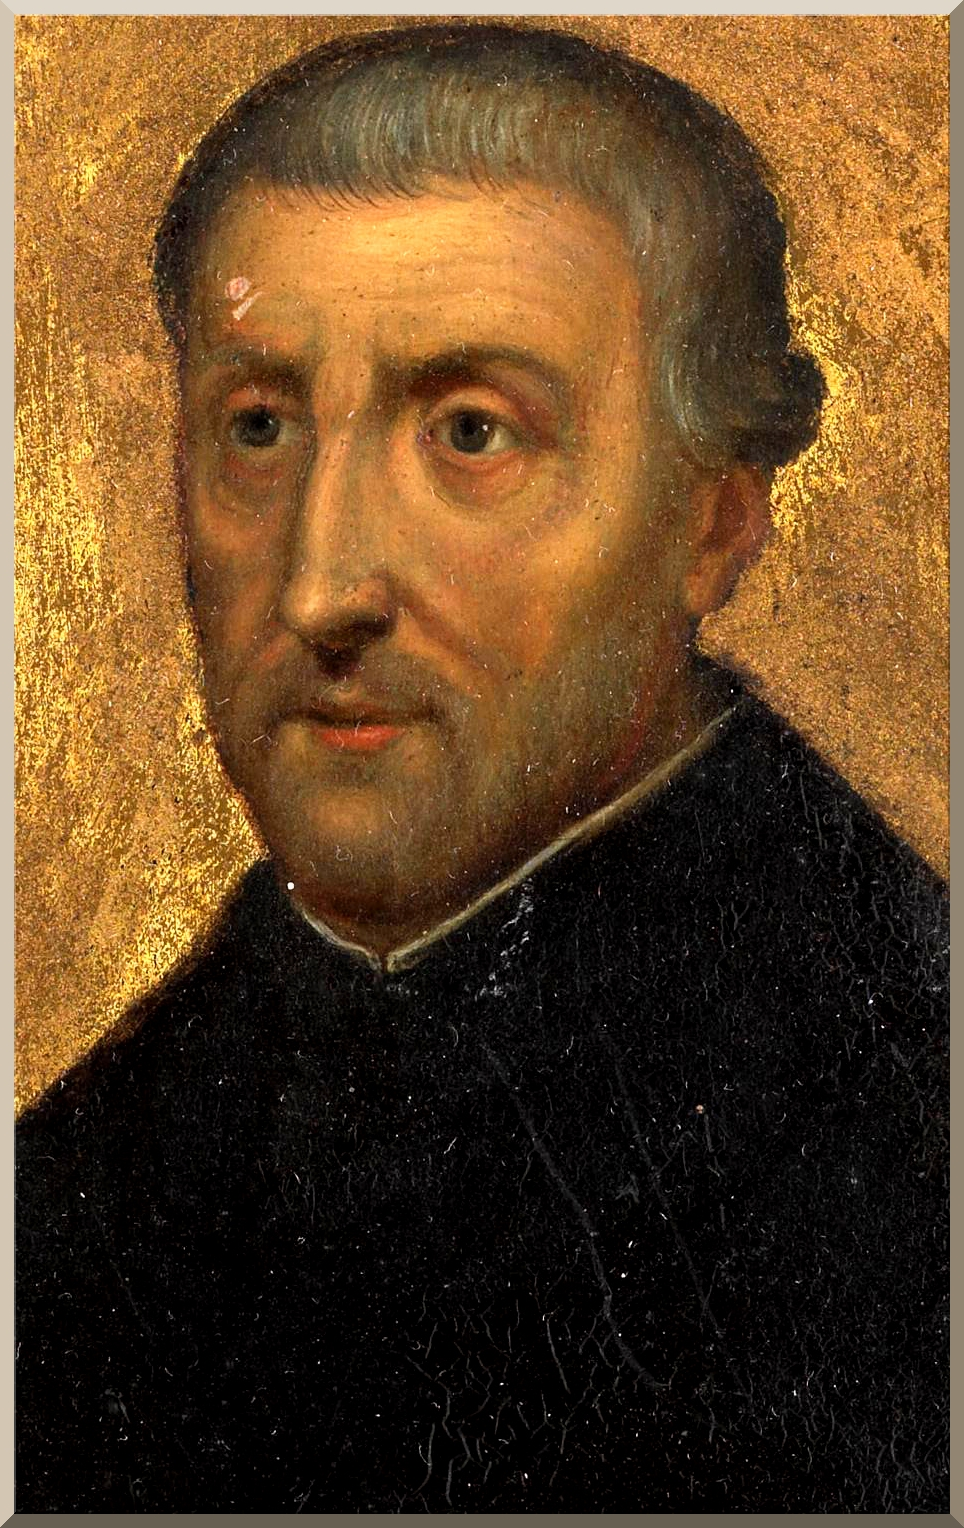 a biography of st peter canisius Saint peter canisius born in 1521 of a distinguished family of holland, saint peter canisius studied in cologne and received his license as doctor of civil law he then went to louvain (belgium) to learn canon law.